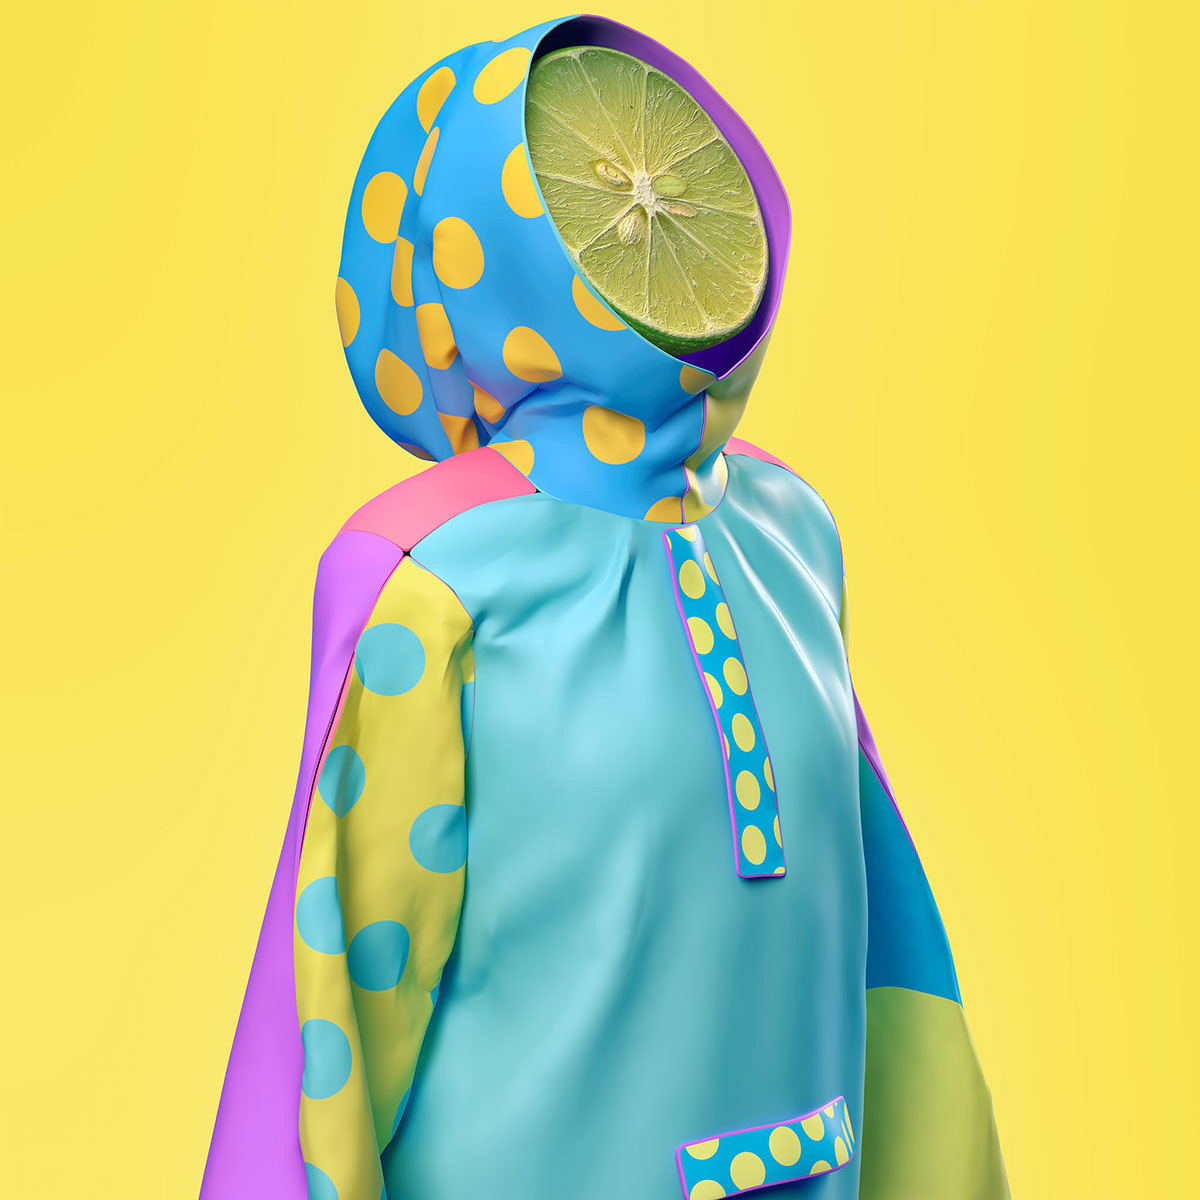 Pop Art Illustrations using 3D Design by Kota Yamaji